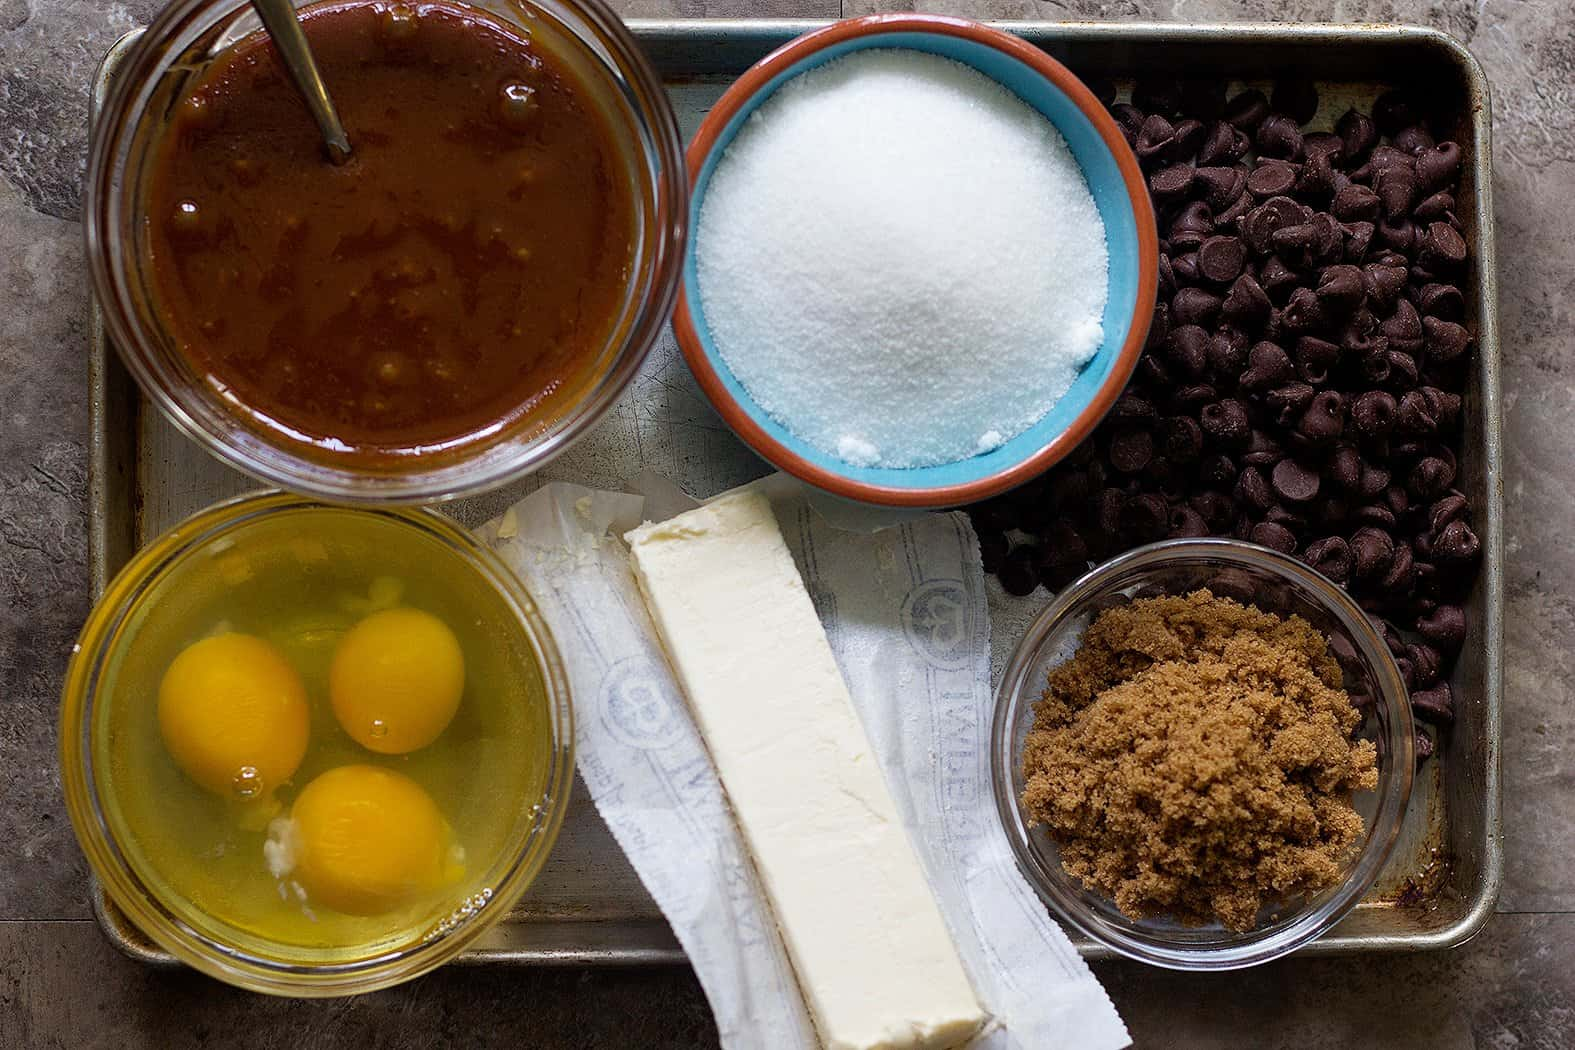 To make homemade brownies with caramel you need butter, chocolate, sugars, eggs, flour and caramel sauce.